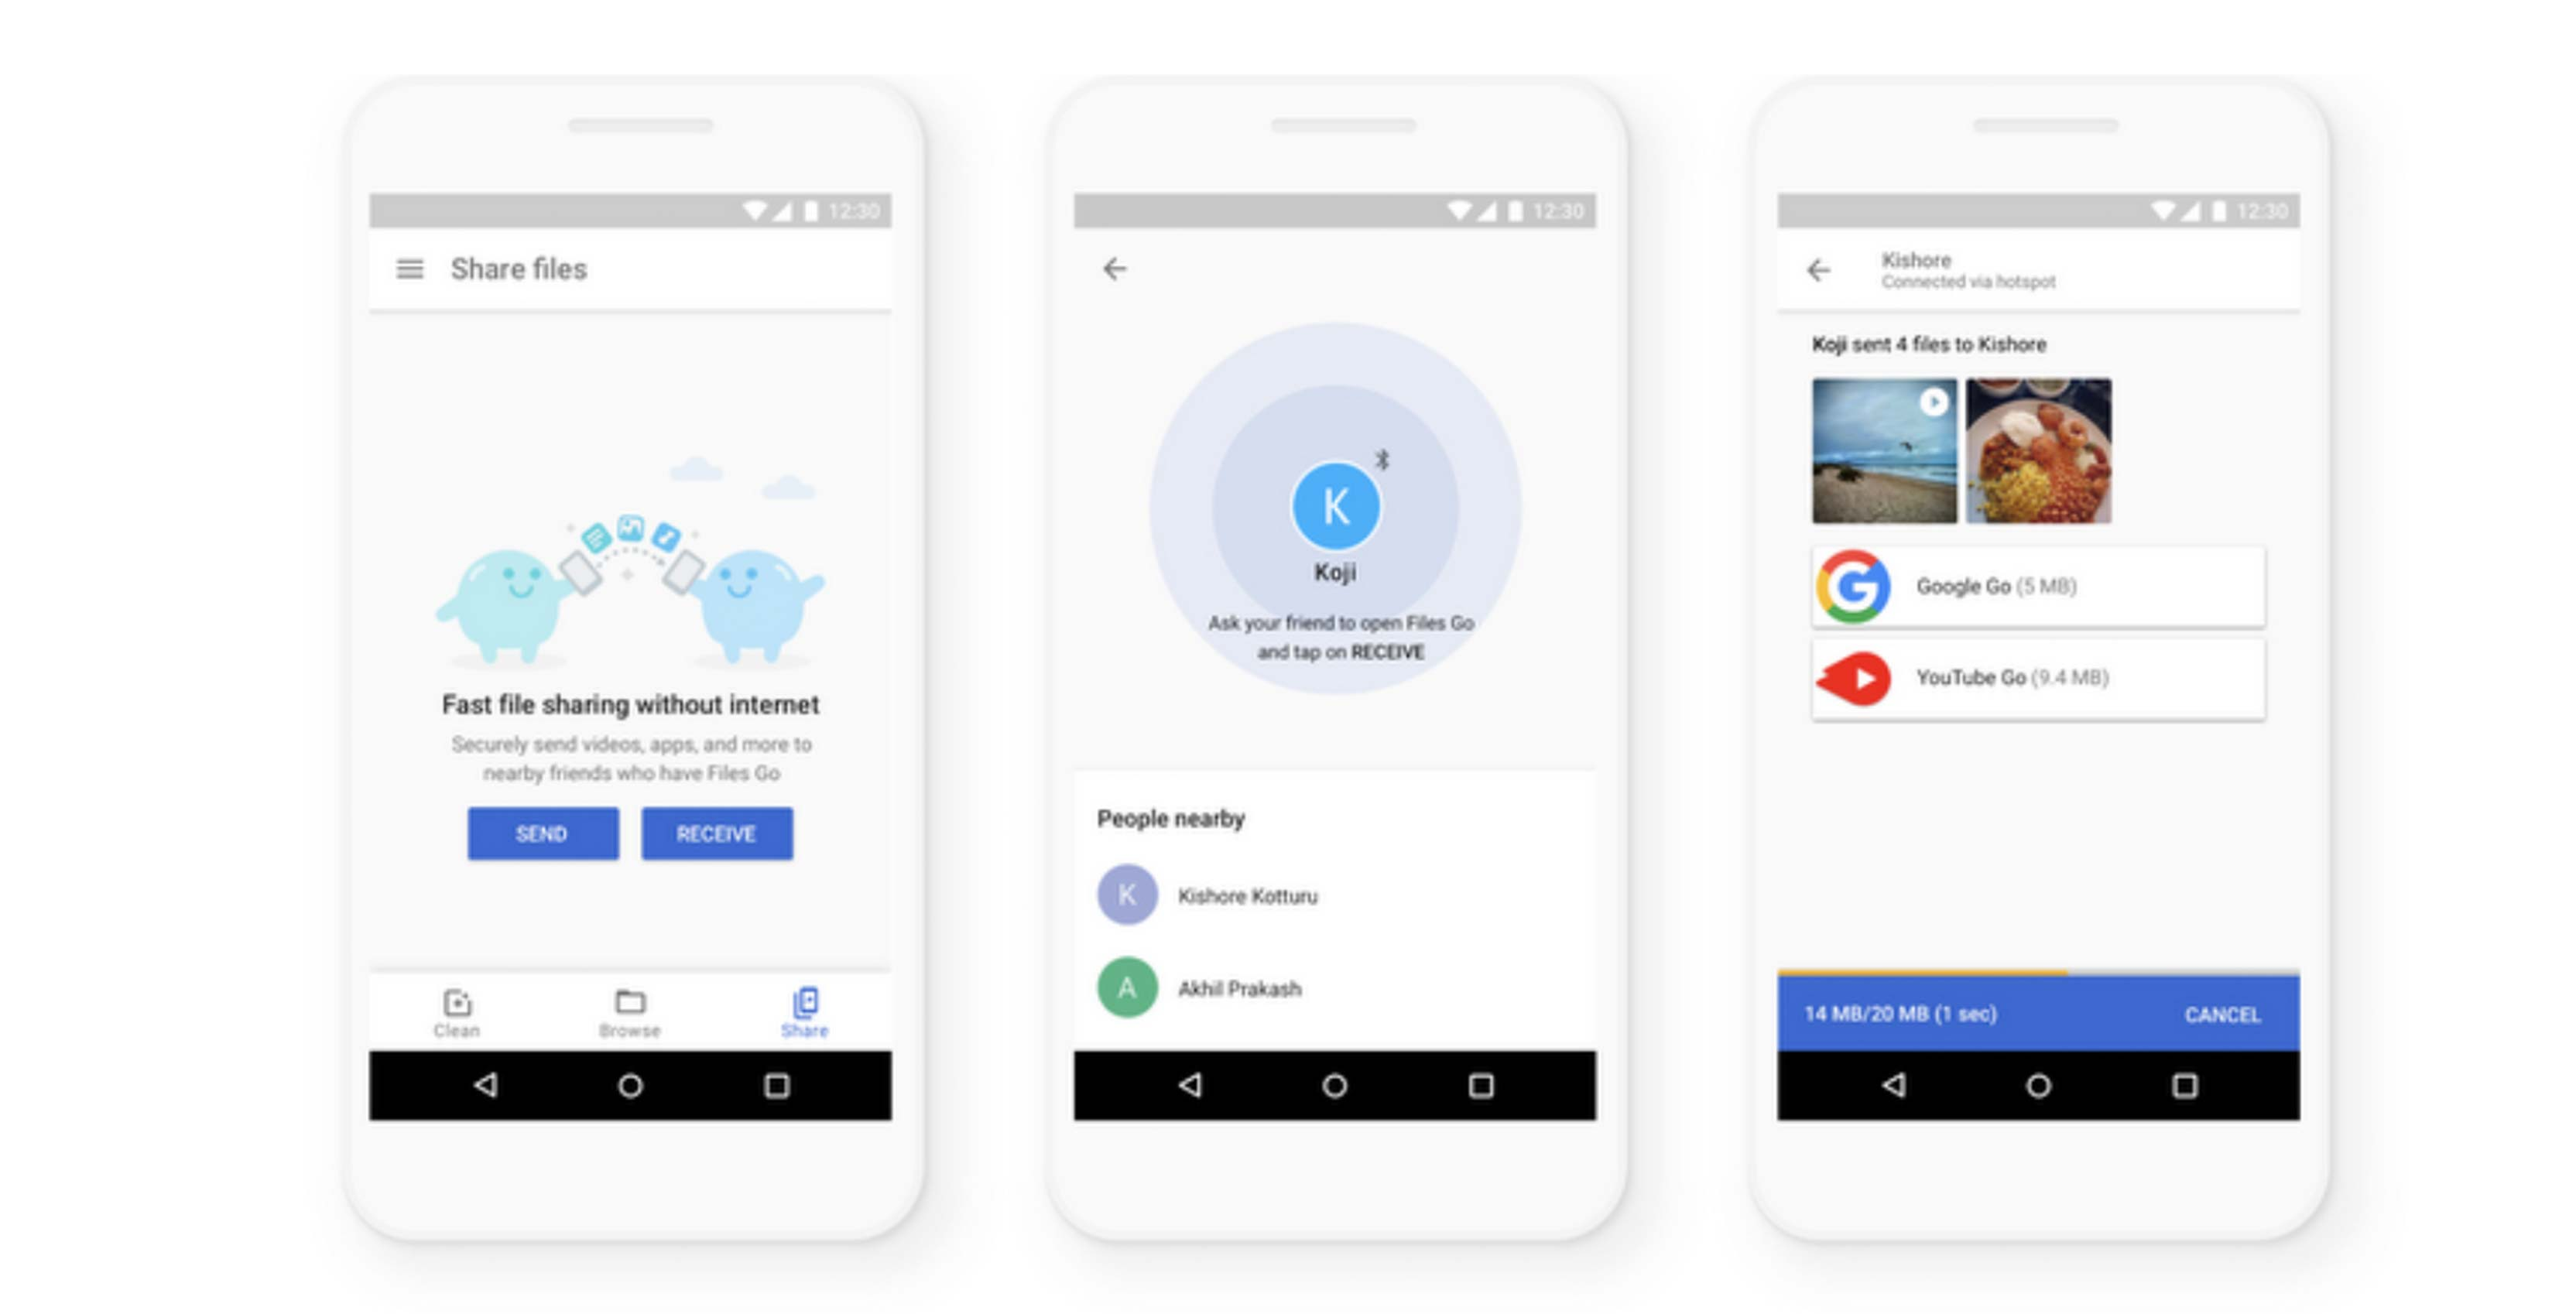 9ac634c1dab Google s Files Go app has been updated again and this time users can share  files to other nearby phones faster than before.